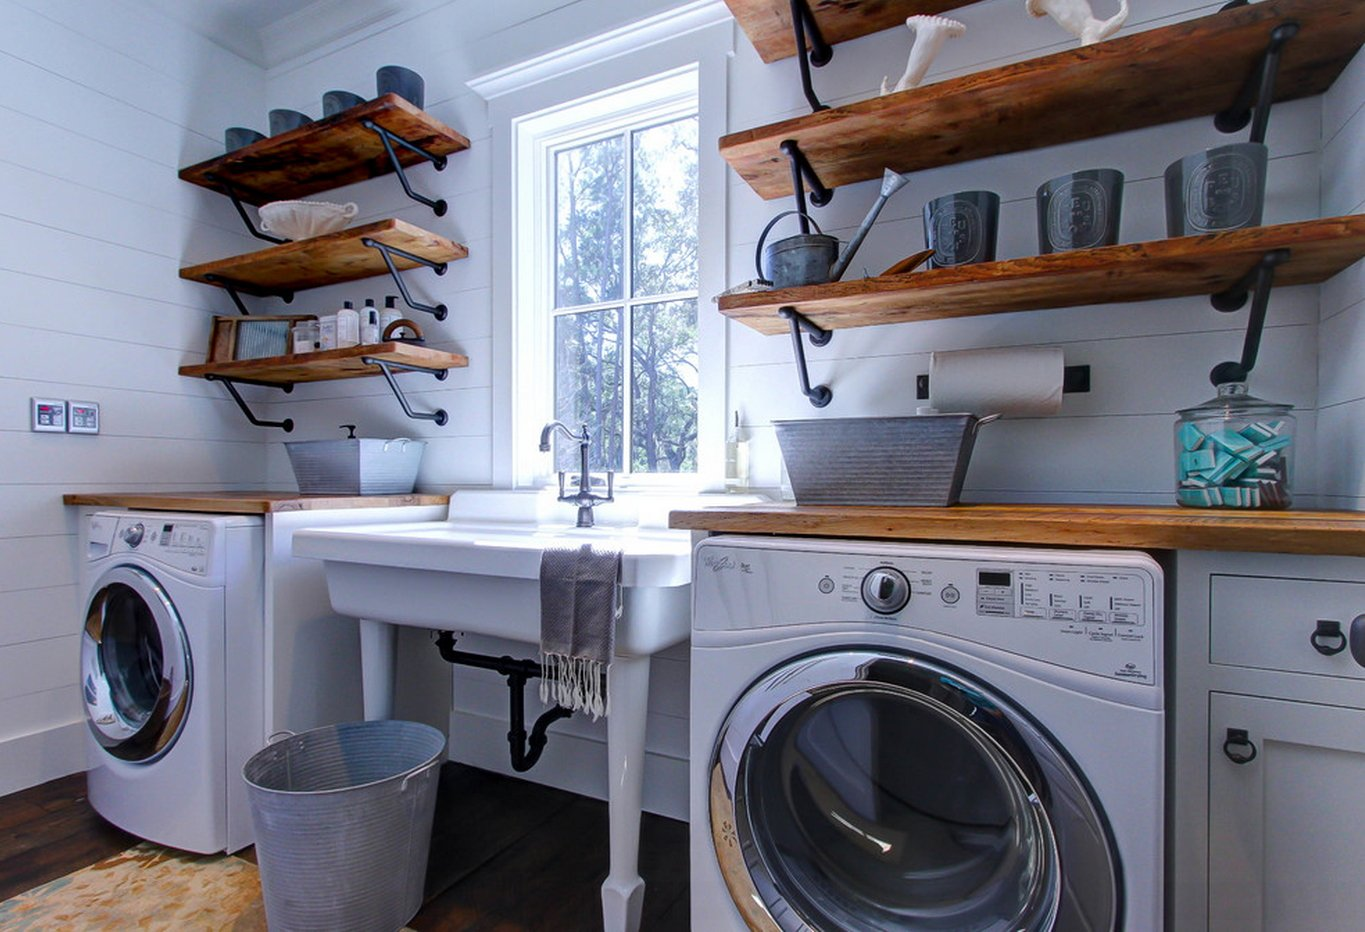 50 best laundry room design ideas for 2017 on best laundry room designs id=26226